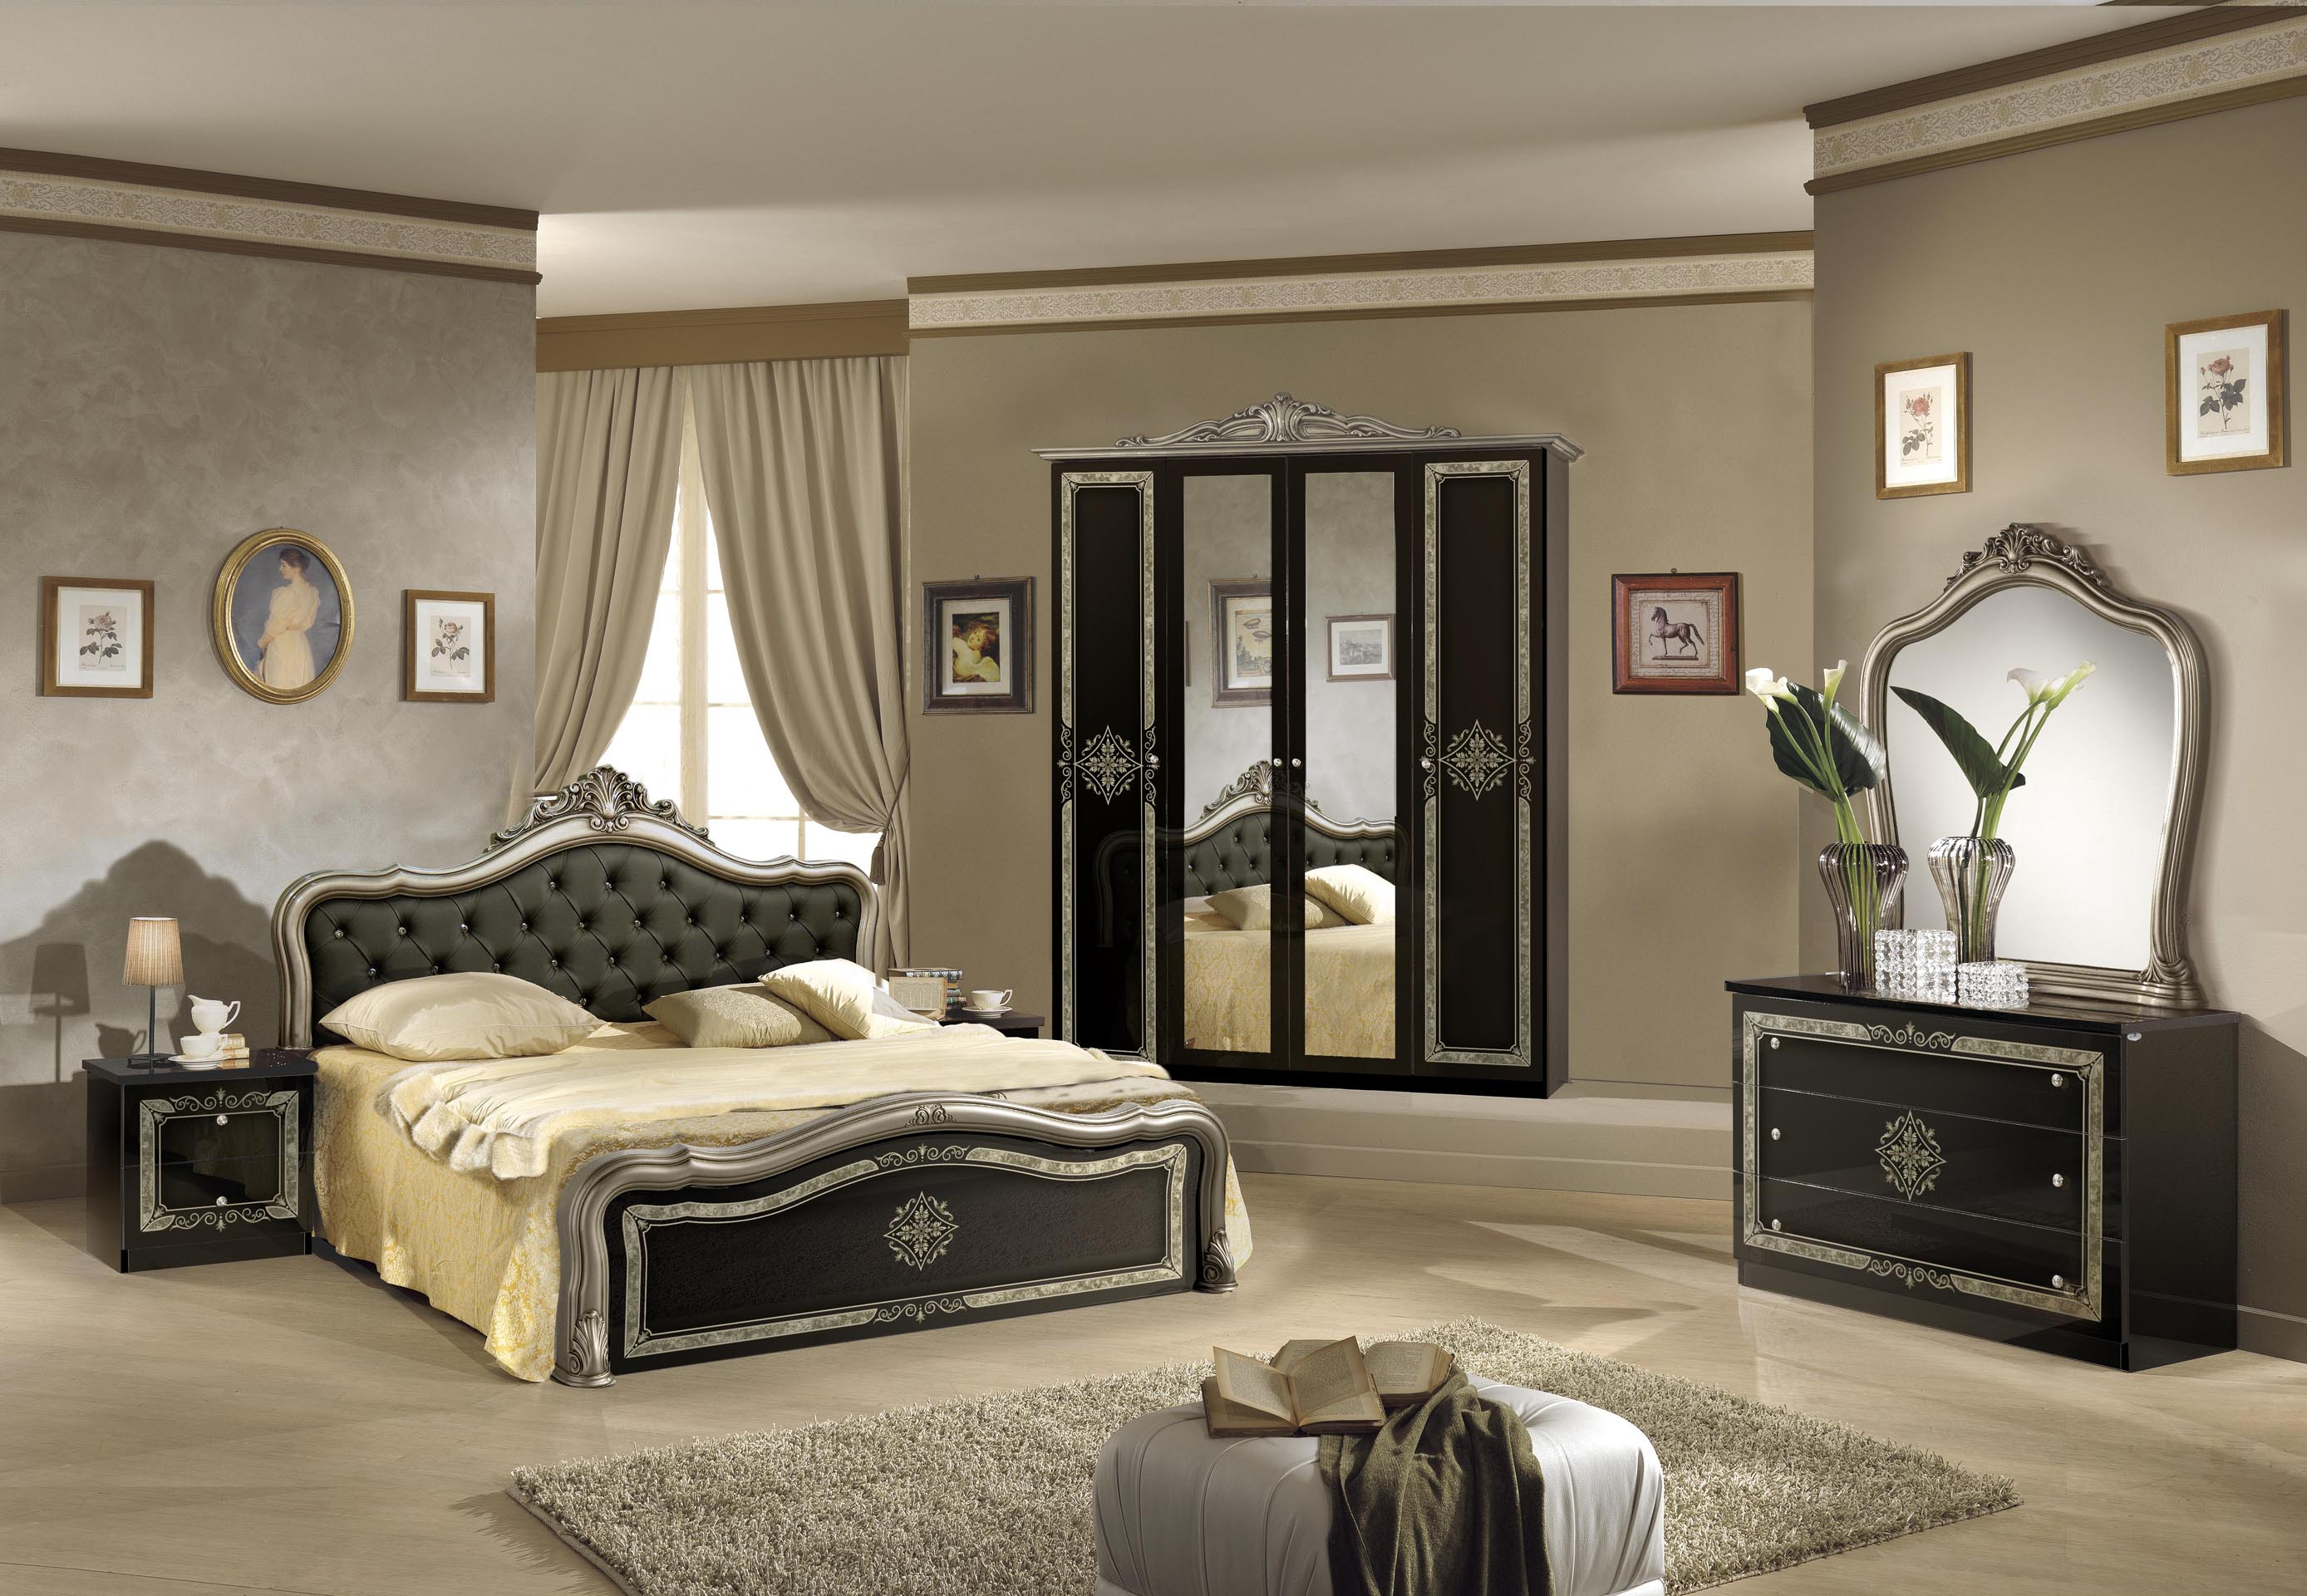 kommode lucy mit spiegel schwarz gold f r schlafzimmer klassik k com m nec ng l spech. Black Bedroom Furniture Sets. Home Design Ideas